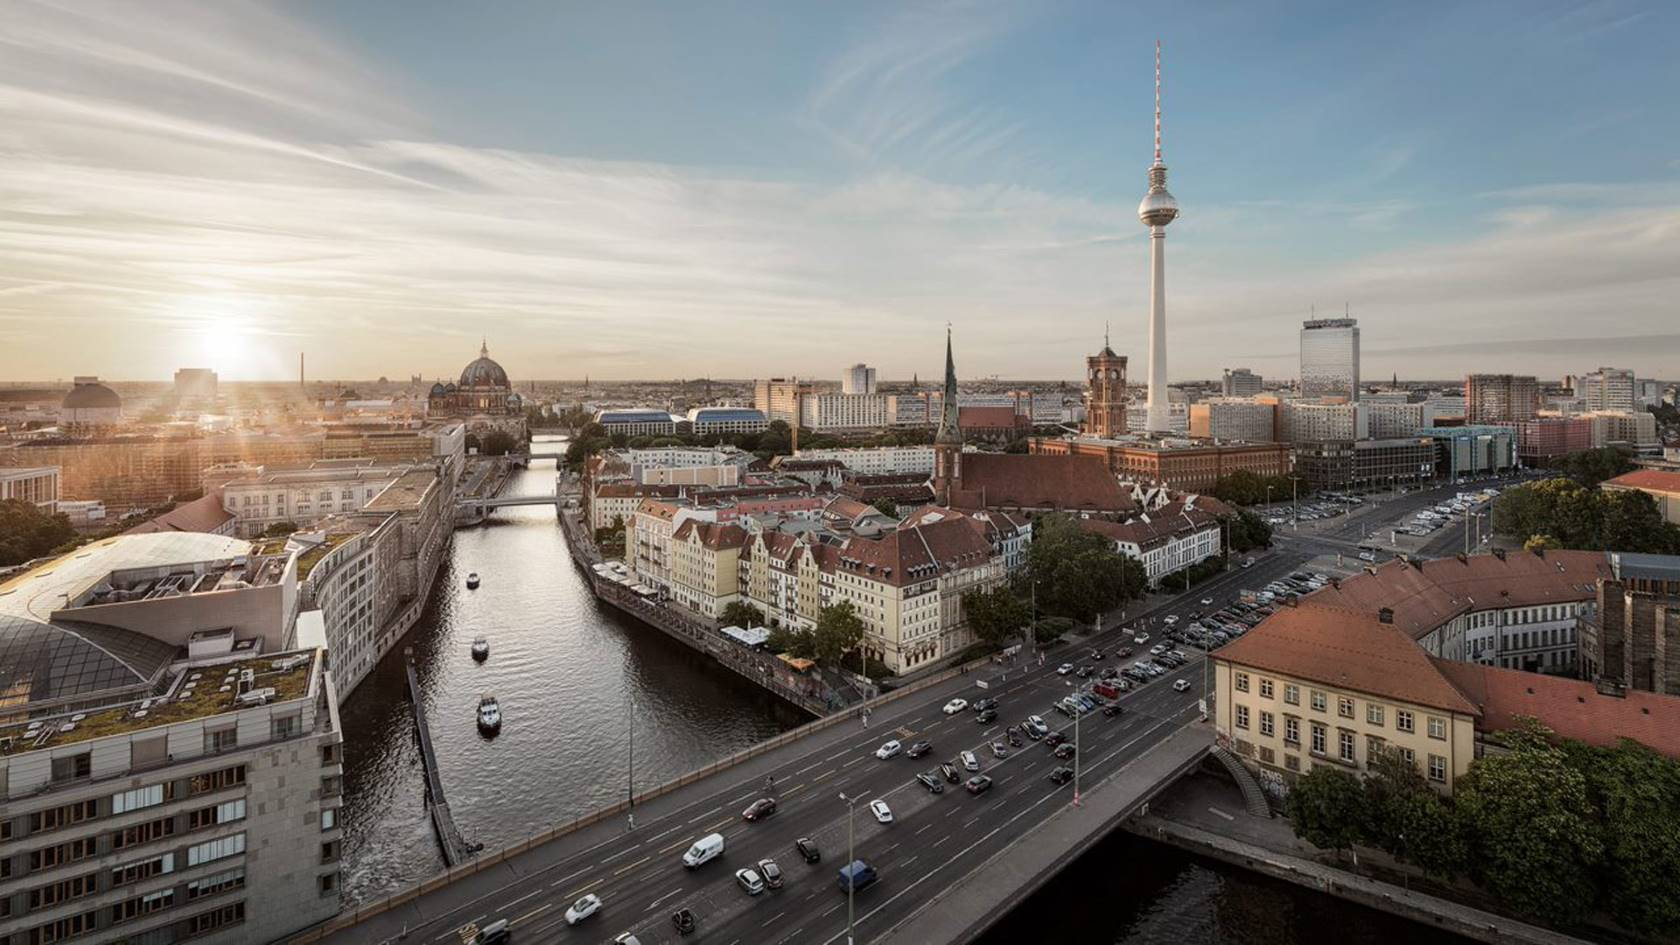 Aerial photo of Berlin